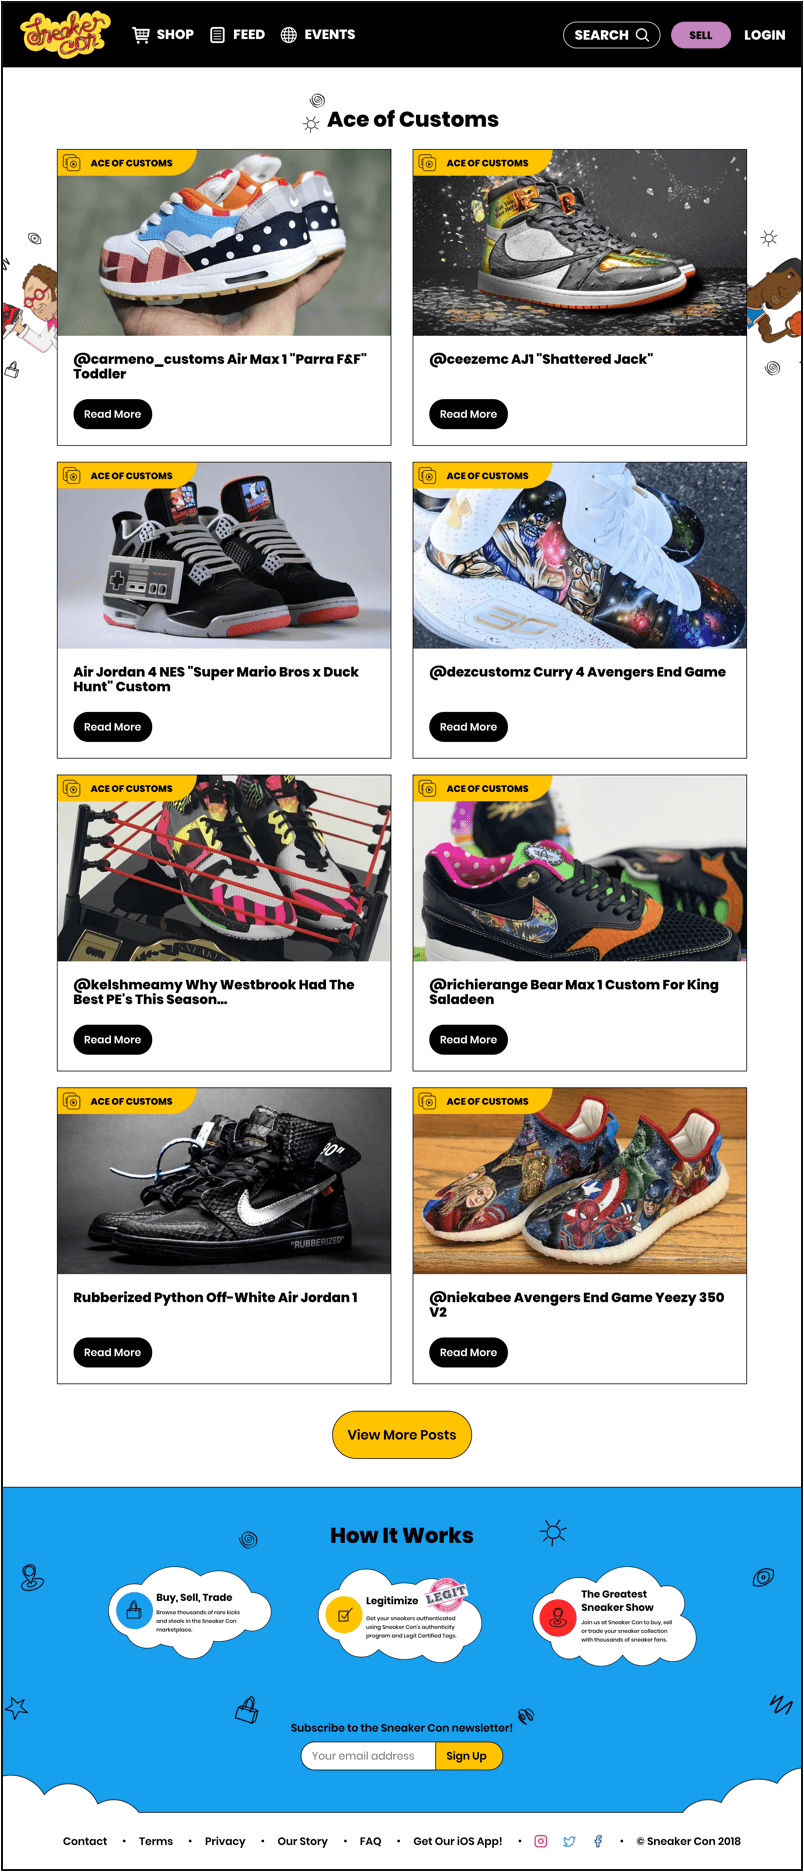 Ace of customers Sneaker Con desktop page